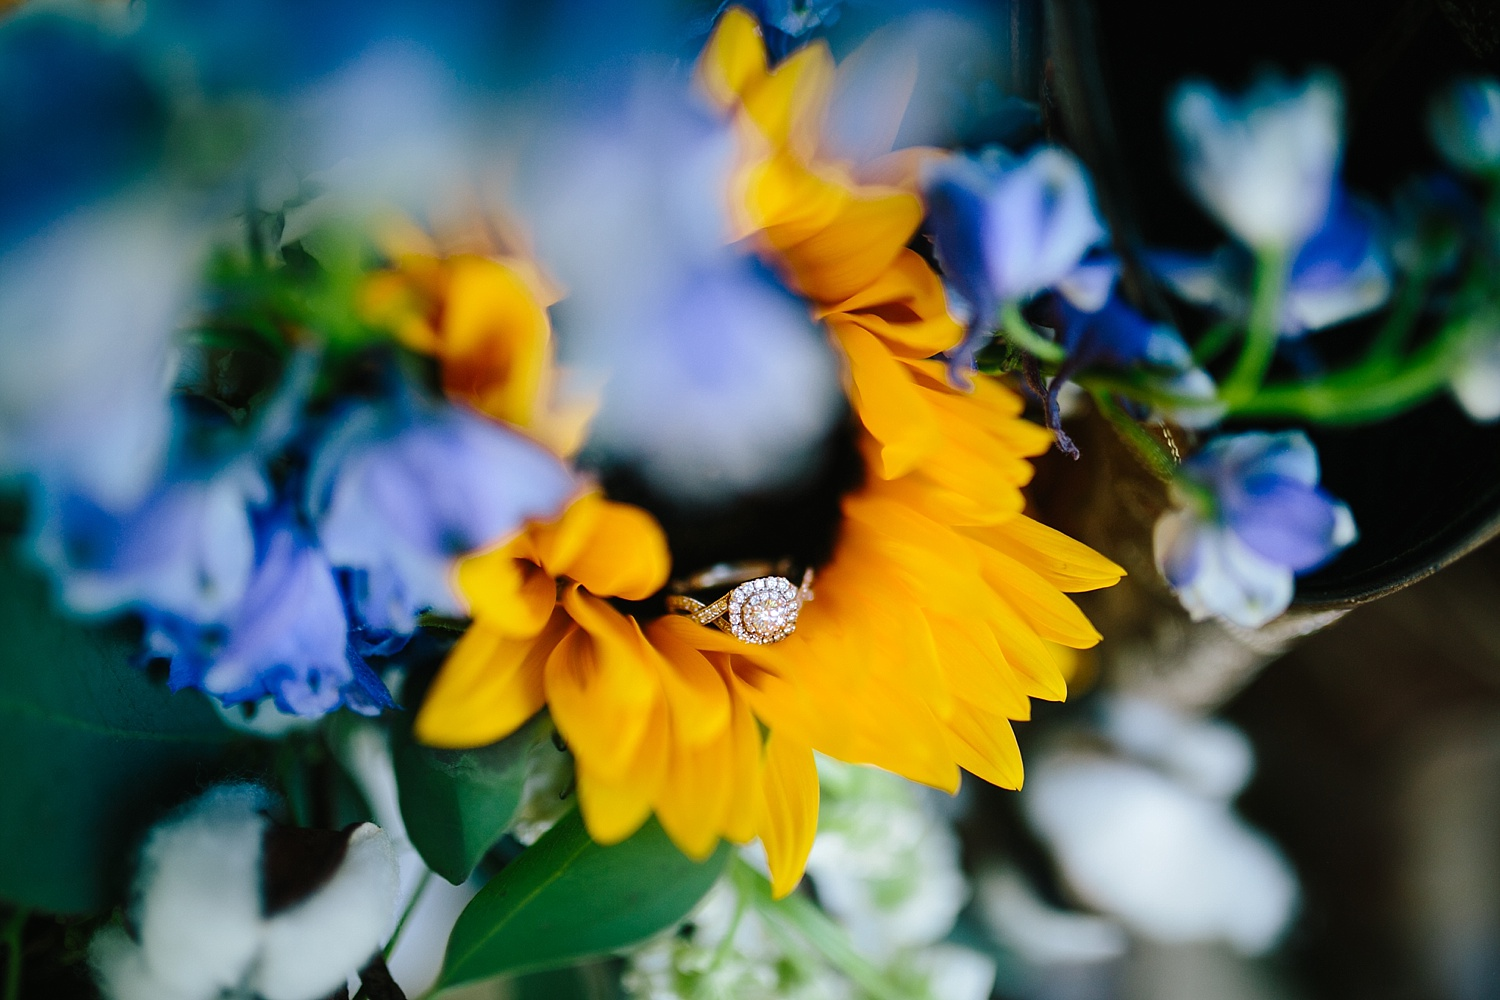 jennyryan_newbeginnings_farmstead_upstatenewyork_wedding_image013.jpg